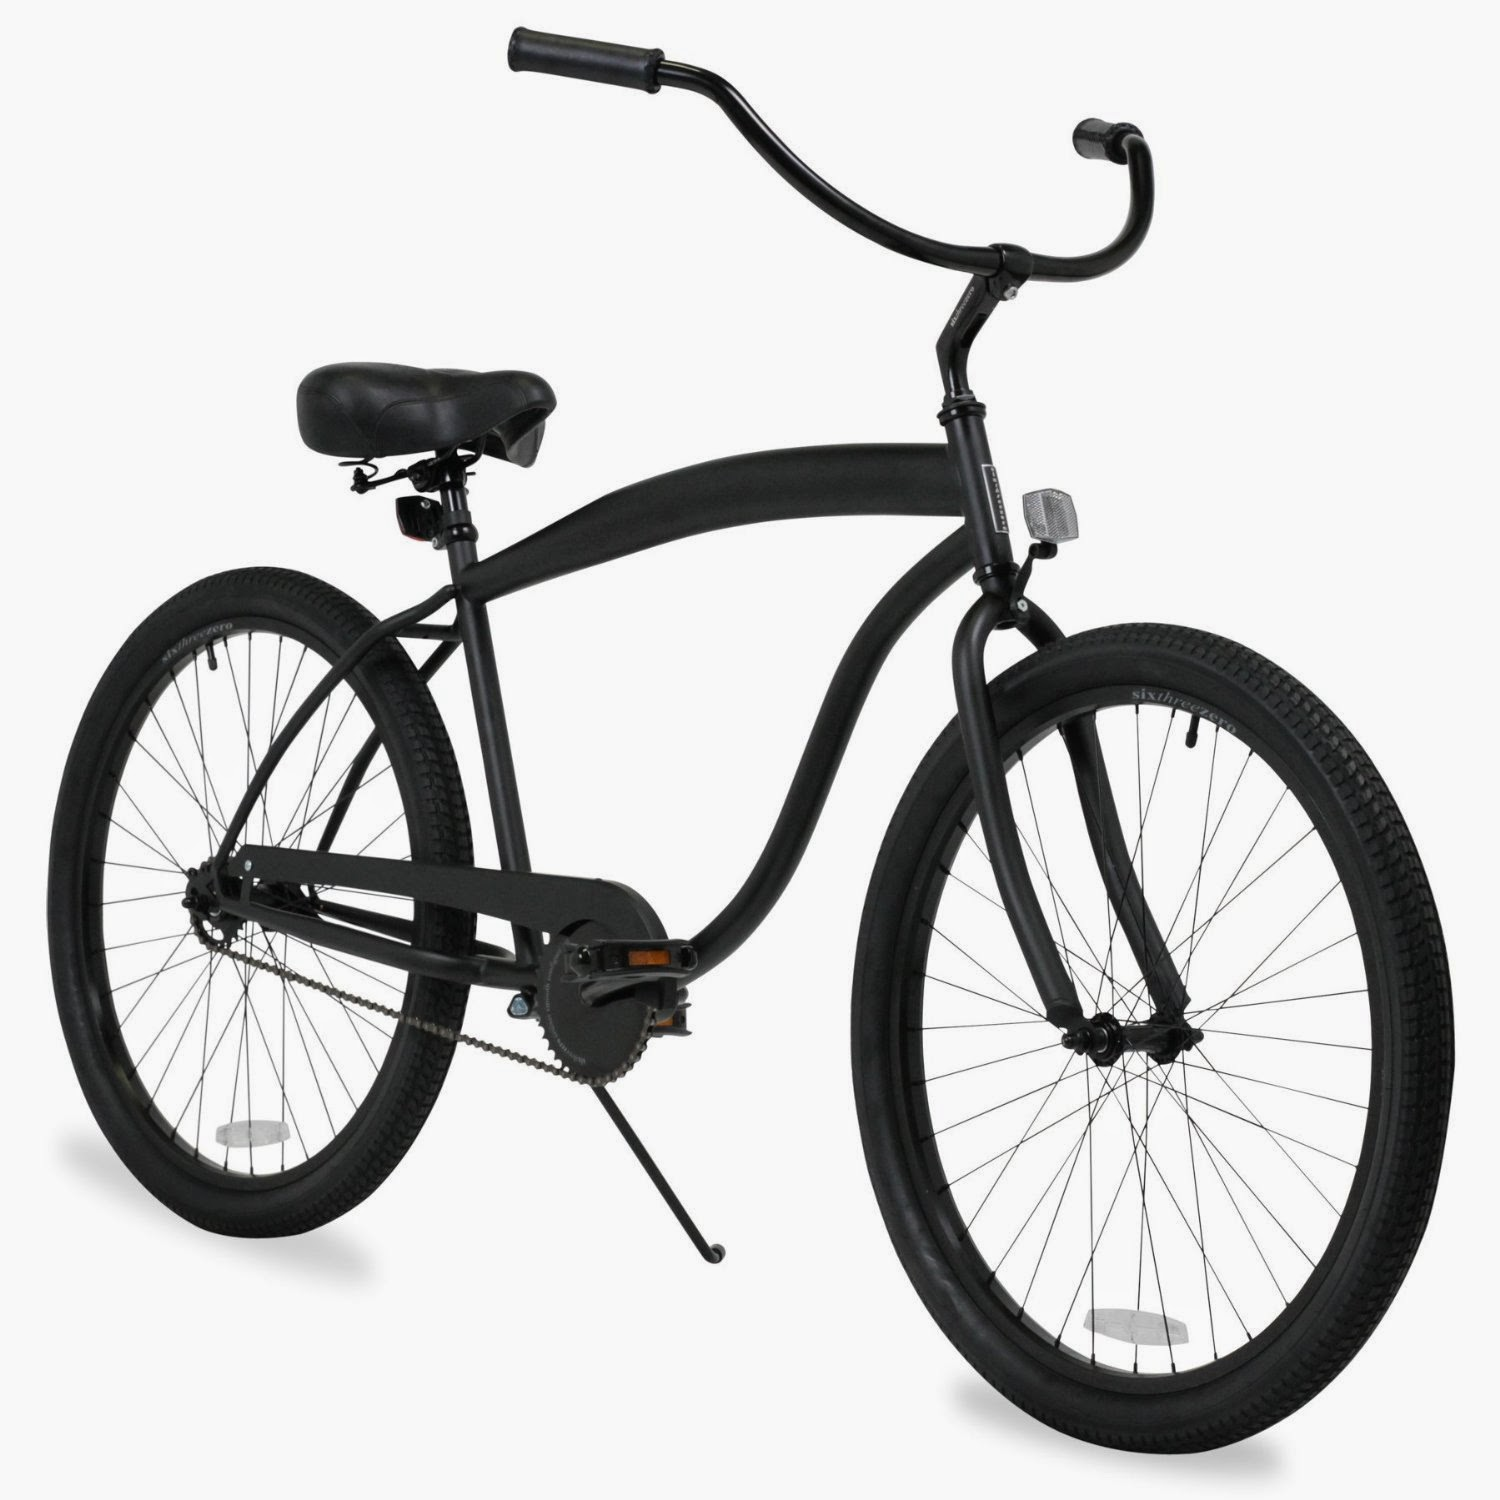 "Sixthreezero Men's in the Barrel Beach Cruiser Bicycle 26"", review, built for comfort and ease of use, choice of single speed or 3-speeds"